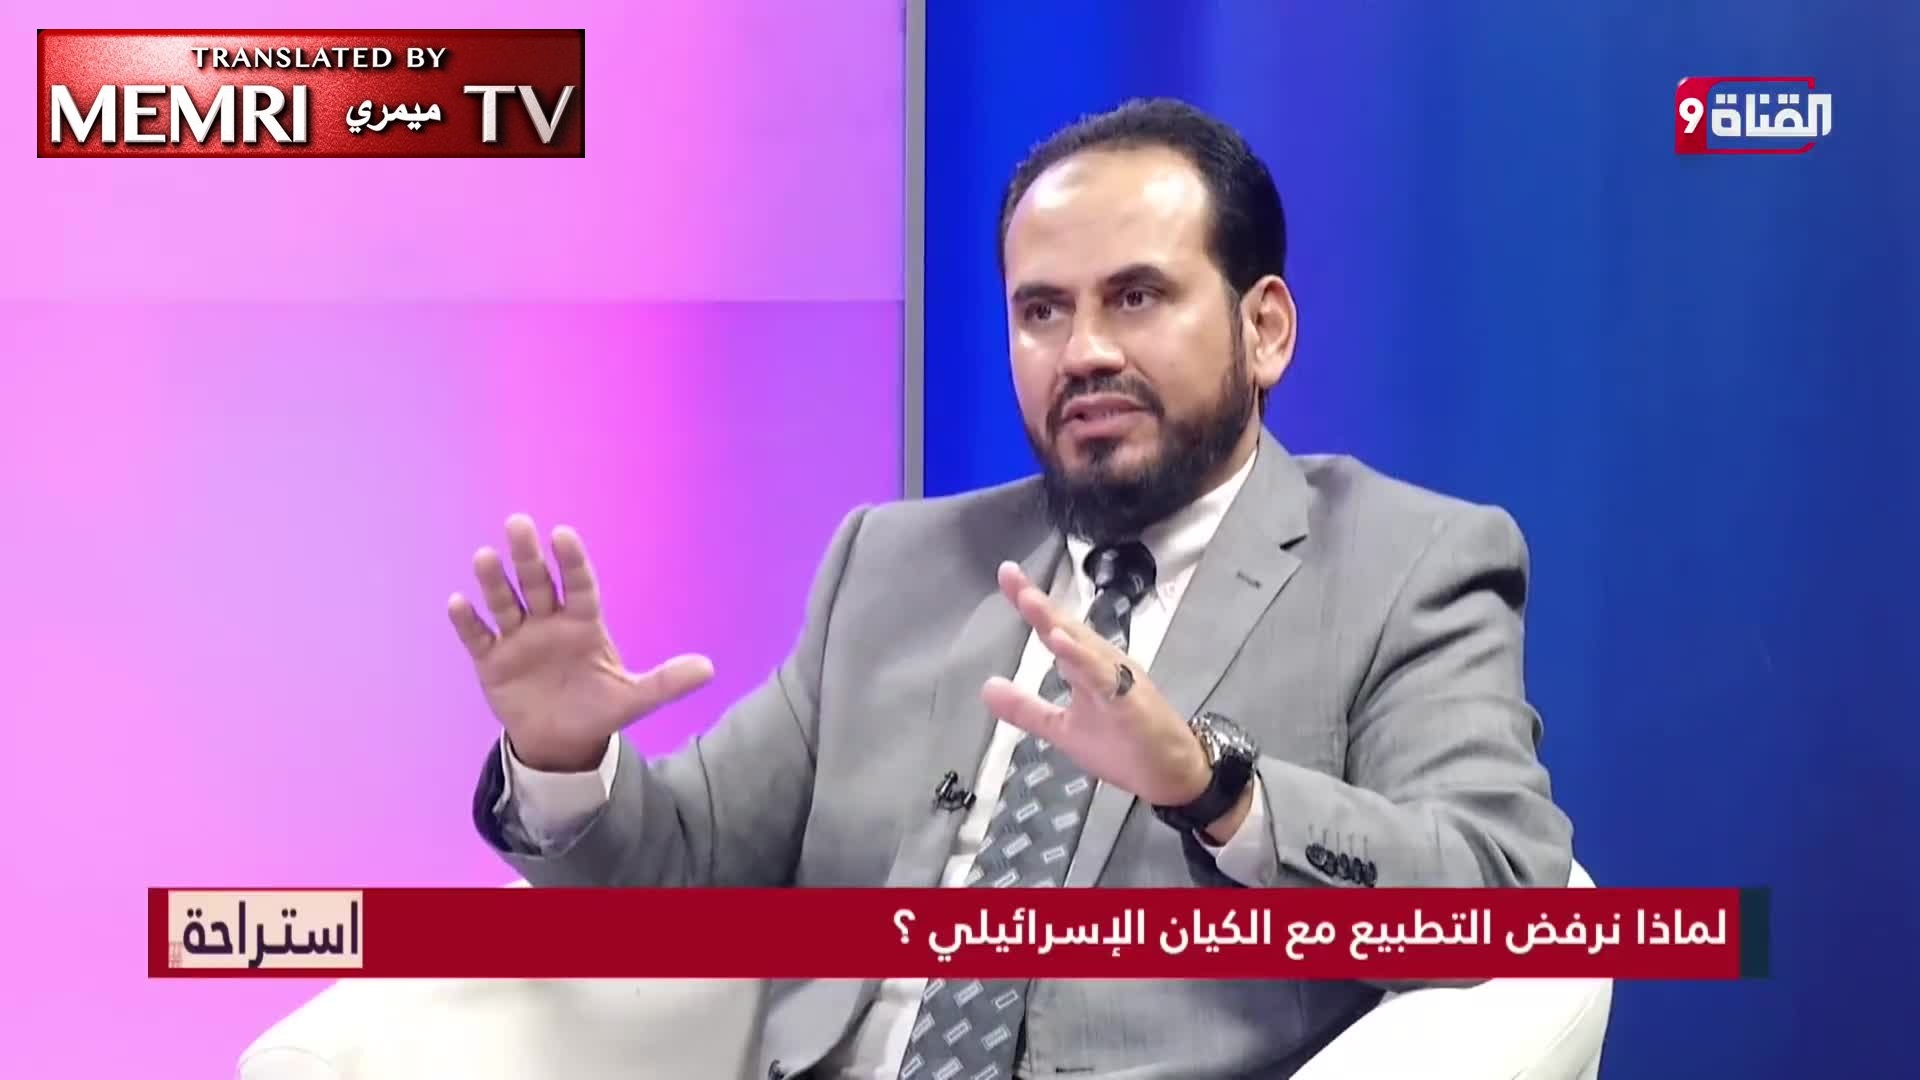 Libyan Researcher Dr. Ali Al-Siba'i: The Treacherous Nature of the Jews Appears in the Quran; Napoleon Pretended to Convert to Islam